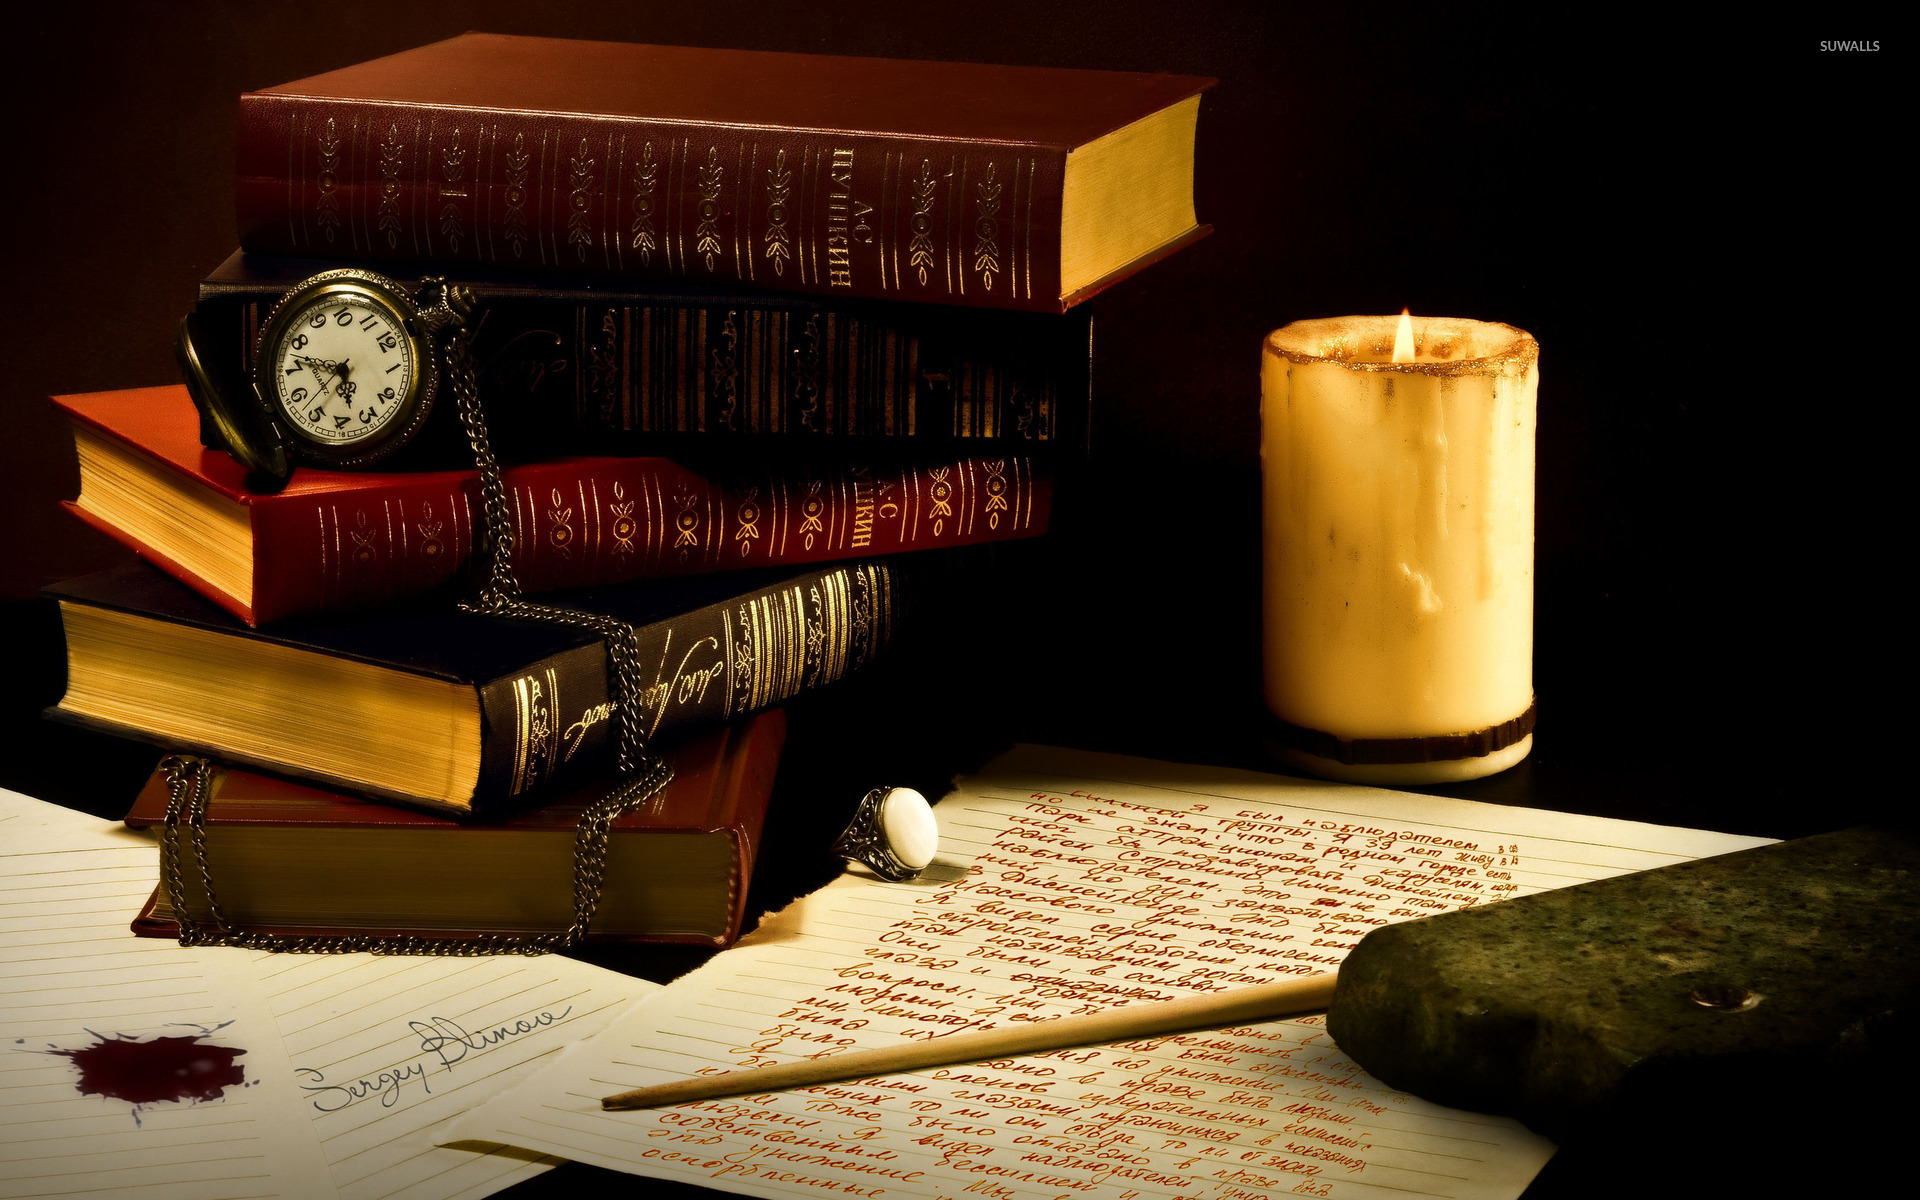 Old books 3 wallpaper photography wallpapers 37393 for Book wallpaper for walls